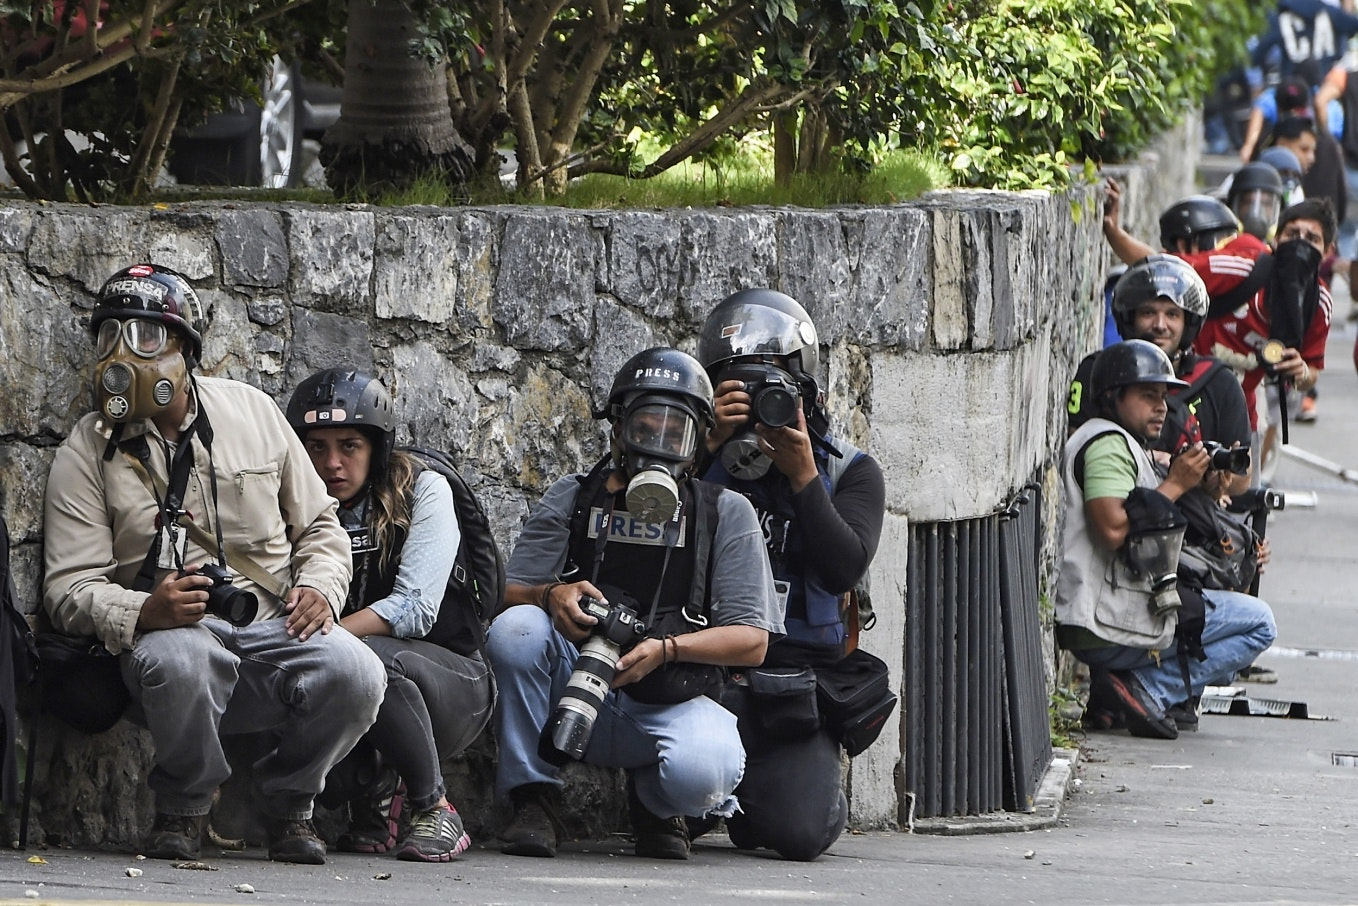 People in gas masks and helmets crouch at a stone wall